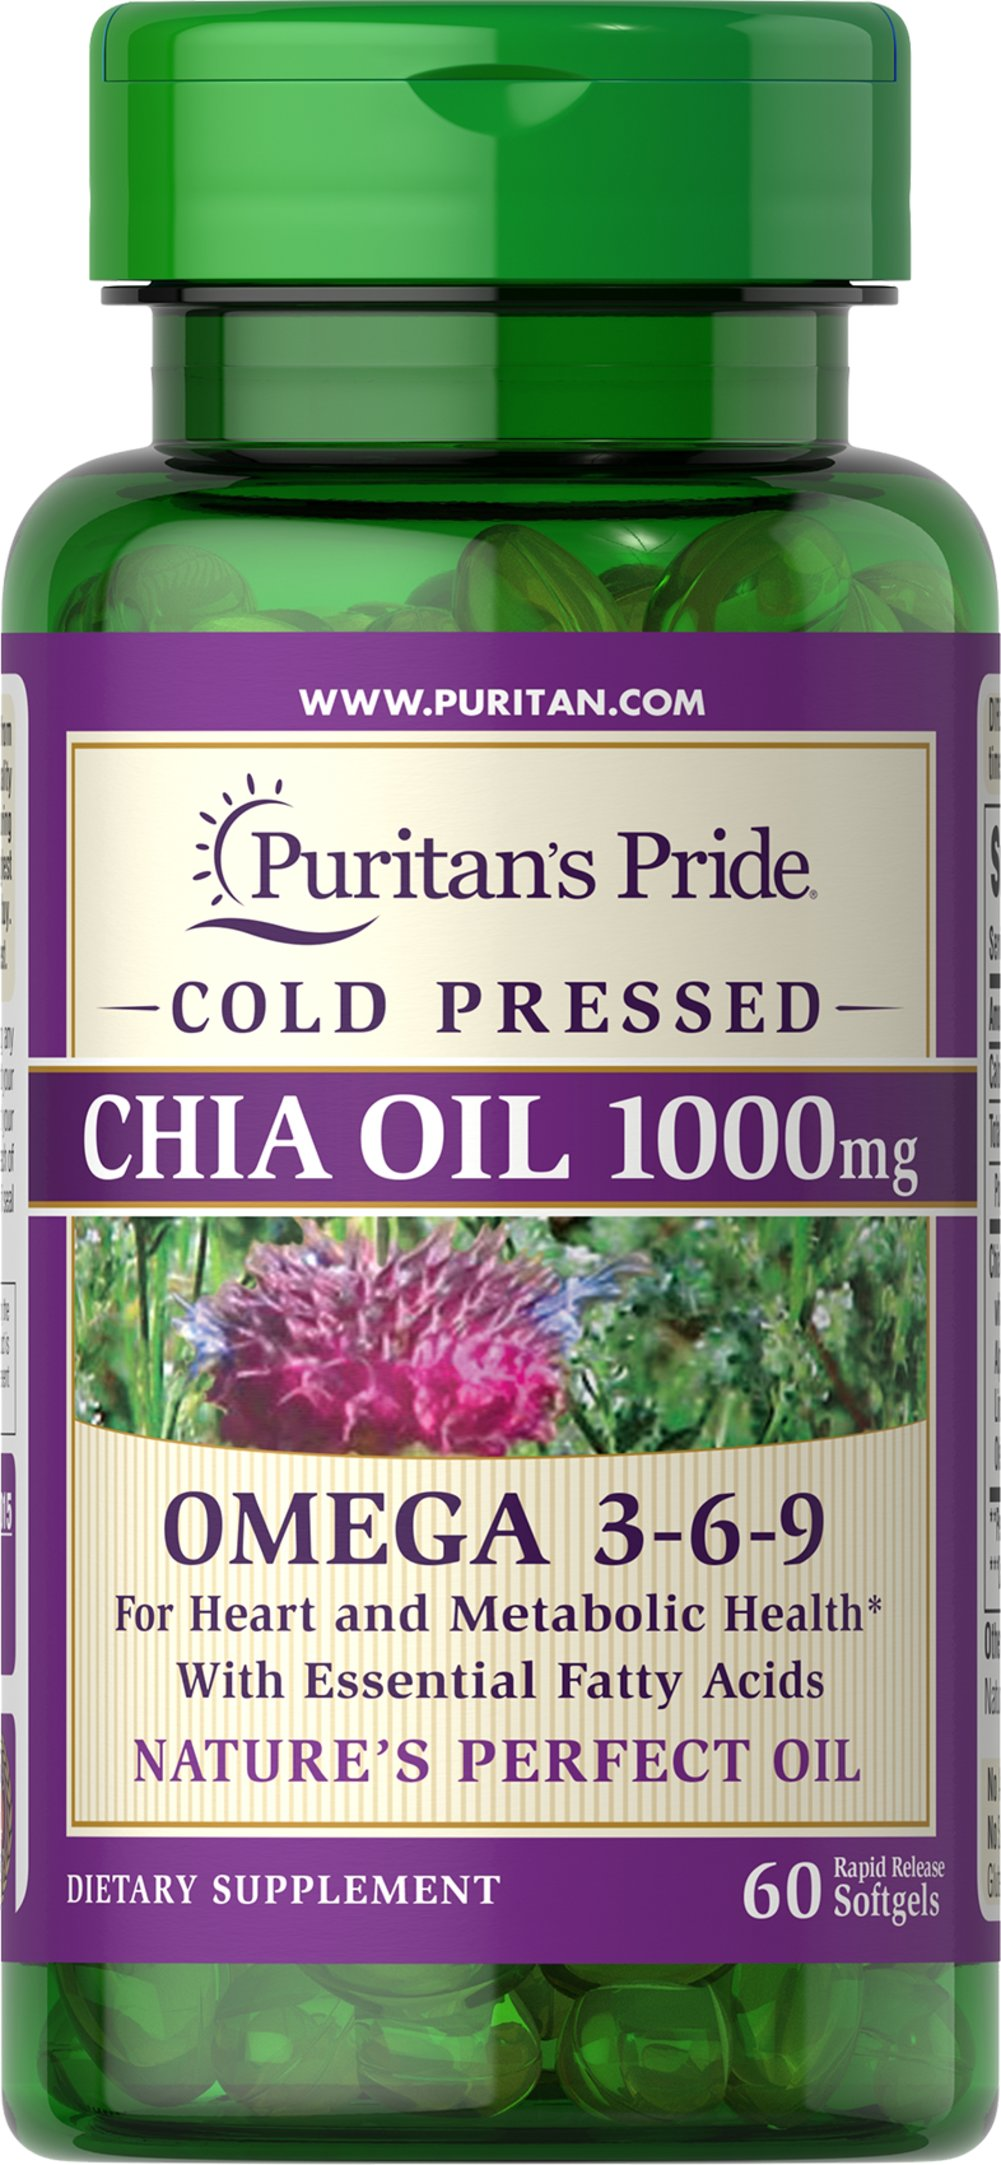 Omega 3-6-9 Chia Seed Oil 1000 mg <p>Chia Oil is perfect for anyone looking for a non-fish source of essential omega fatty acids for health and wellness.**</p><p>Lab analysis indicates that Chia Oil may even have a higher concentration of essential fats as compared to flaxseed oil, which is generally considered to be the best plant source of Omega-3 fatty acids. **</p> 60 Softgels 1000 mg $22.99